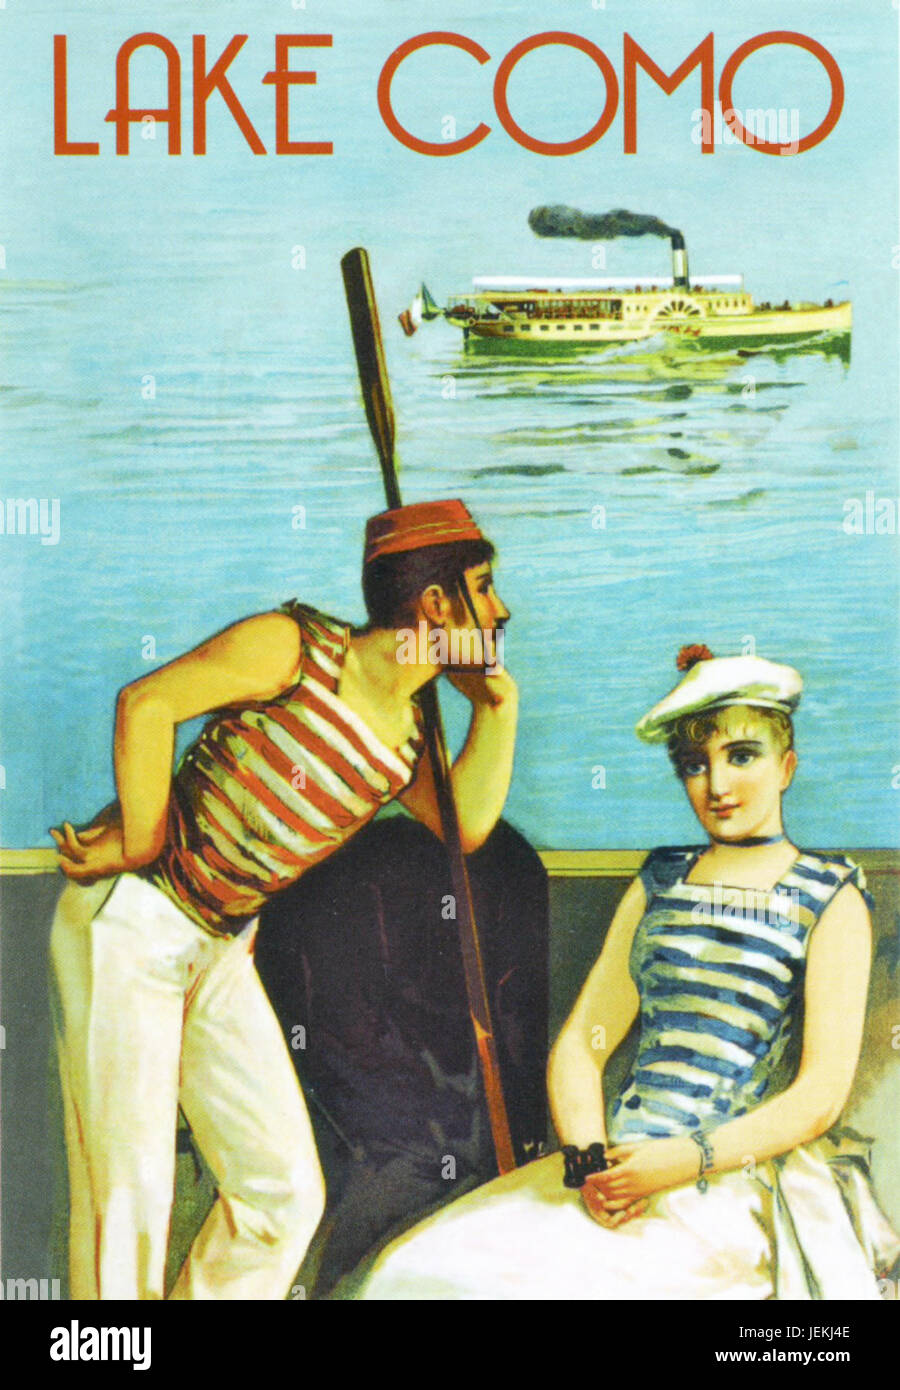 LAKE COMO, Italy. Promotional poster about  1910 with a steamboat ferry in the background and a sailor perhaps reflecting - Stock Image